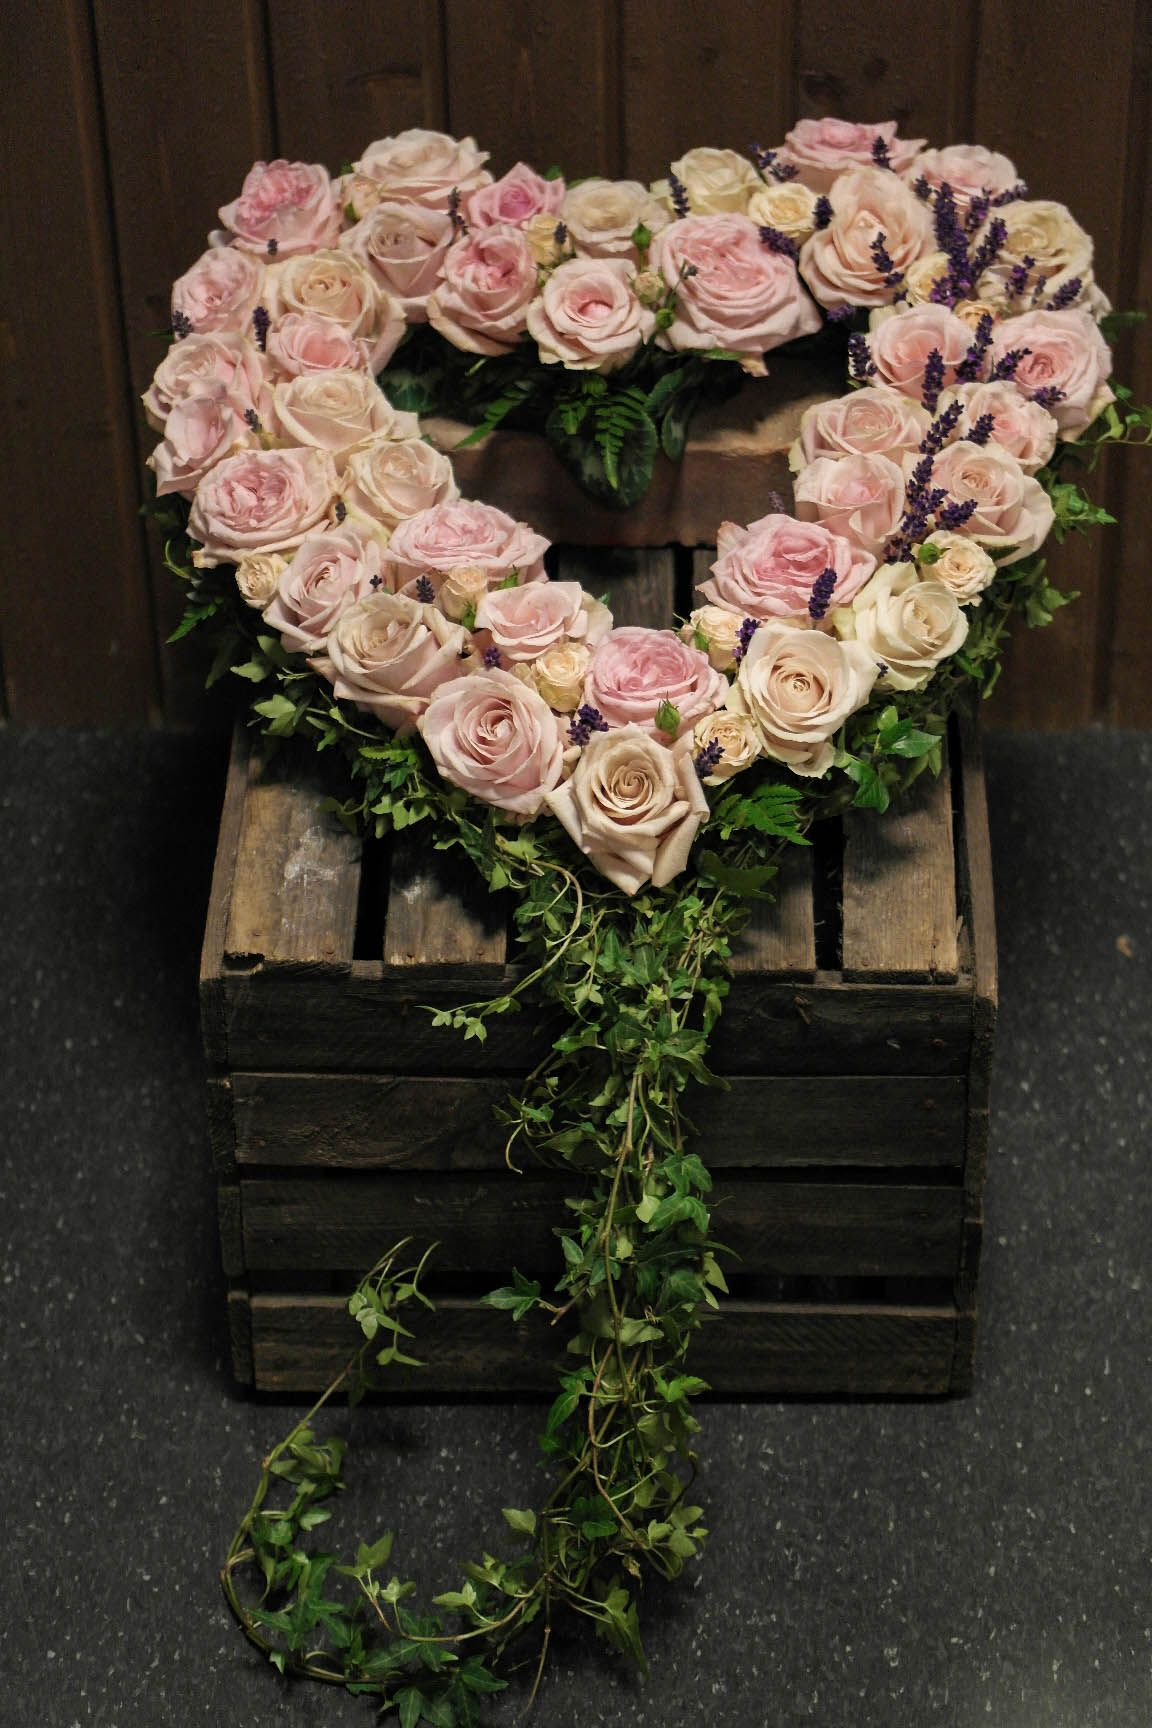 Funeral heart with roses and lavender heart shaped flowers funeral heart with roses and lavender izmirmasajfo Gallery